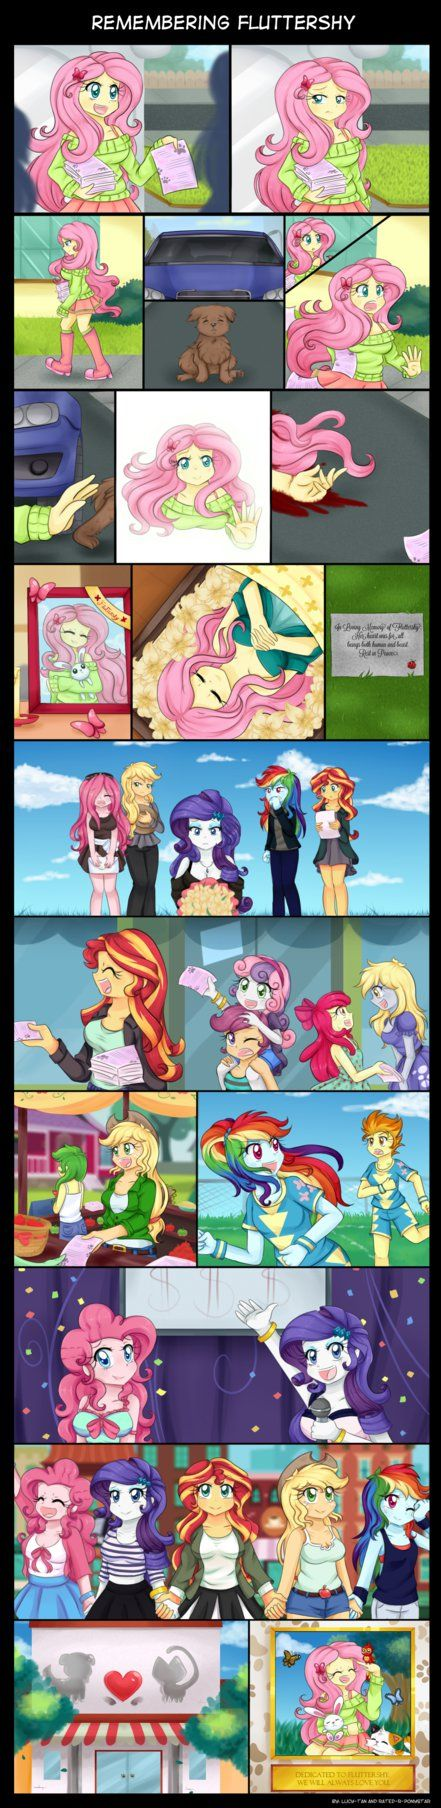 Remembering Fluttershy by Lucy-tan.deviantart.com on @DeviantArt>>> can I just say... Who the fuck would make something like this?!?!